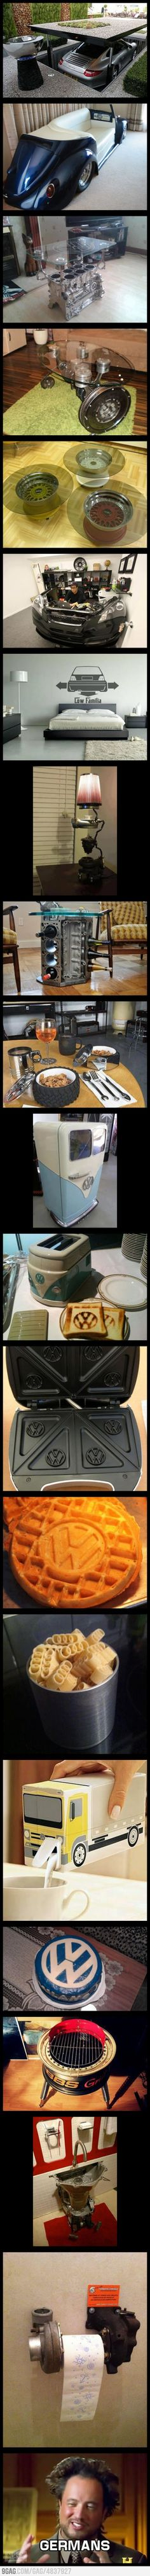 ...some things you can do with car parts